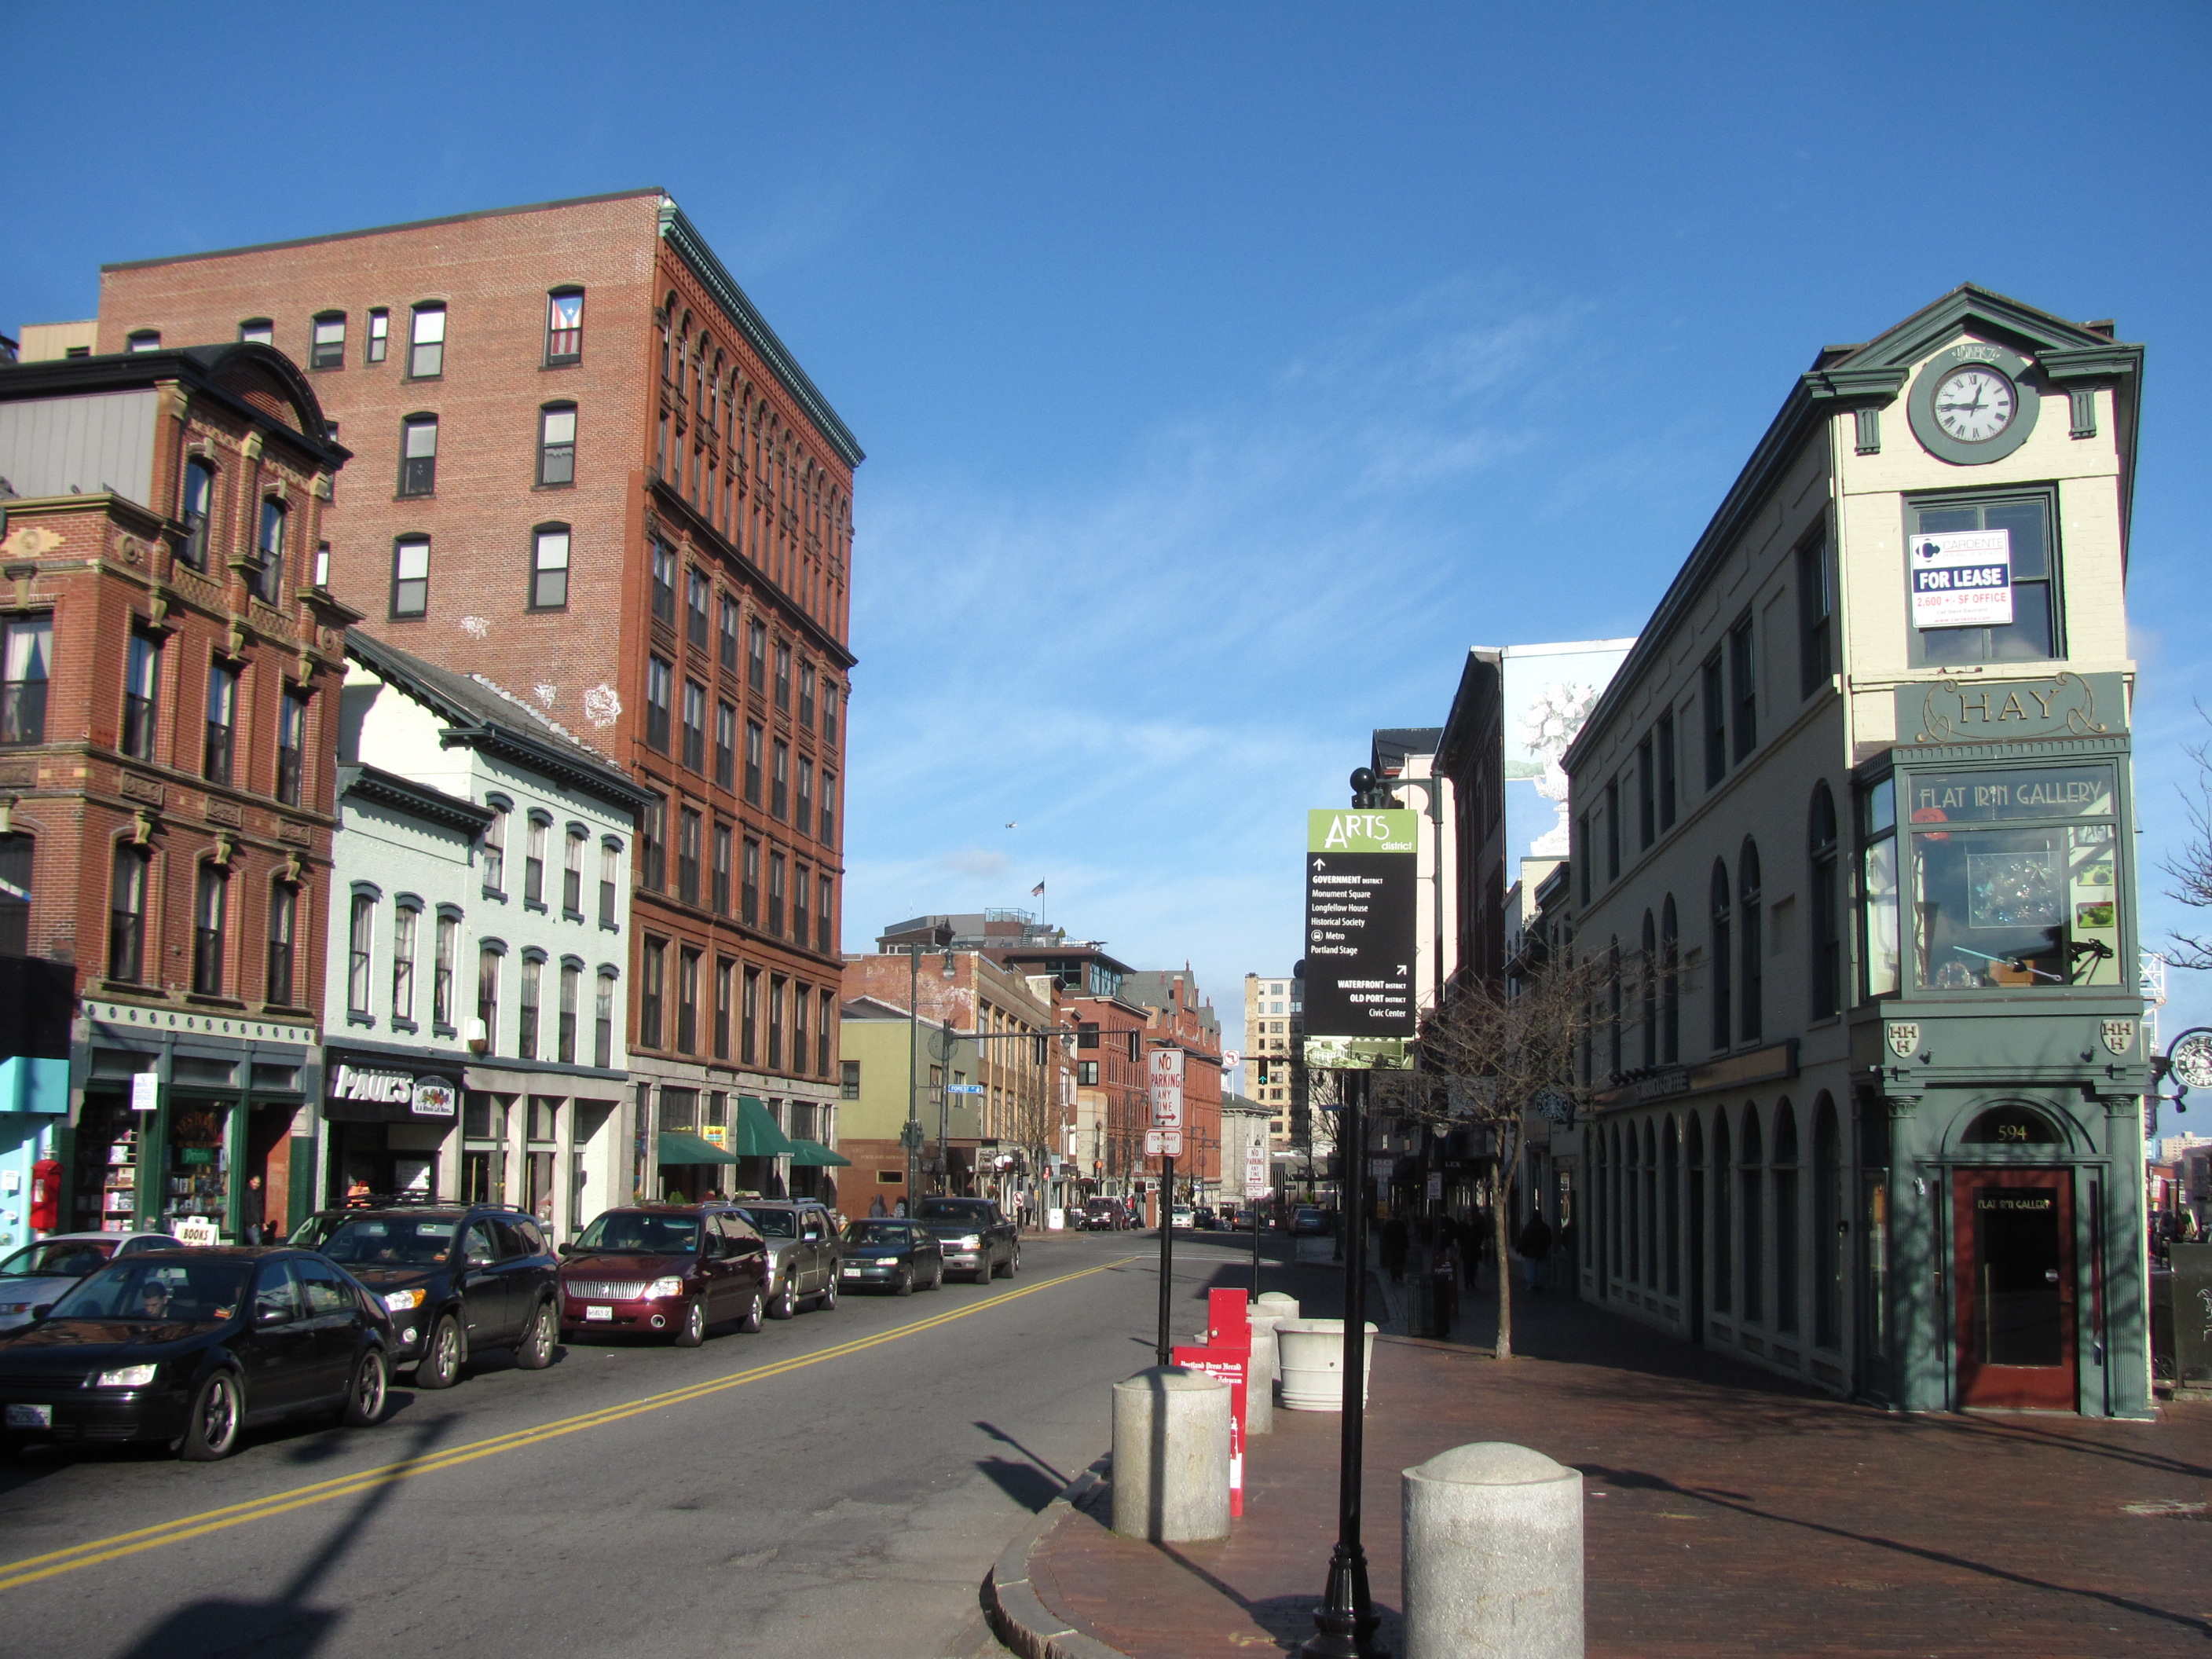 Congress Street and the H. H. Hay building in 2011, by user John Phelan of Wikimedia Commons